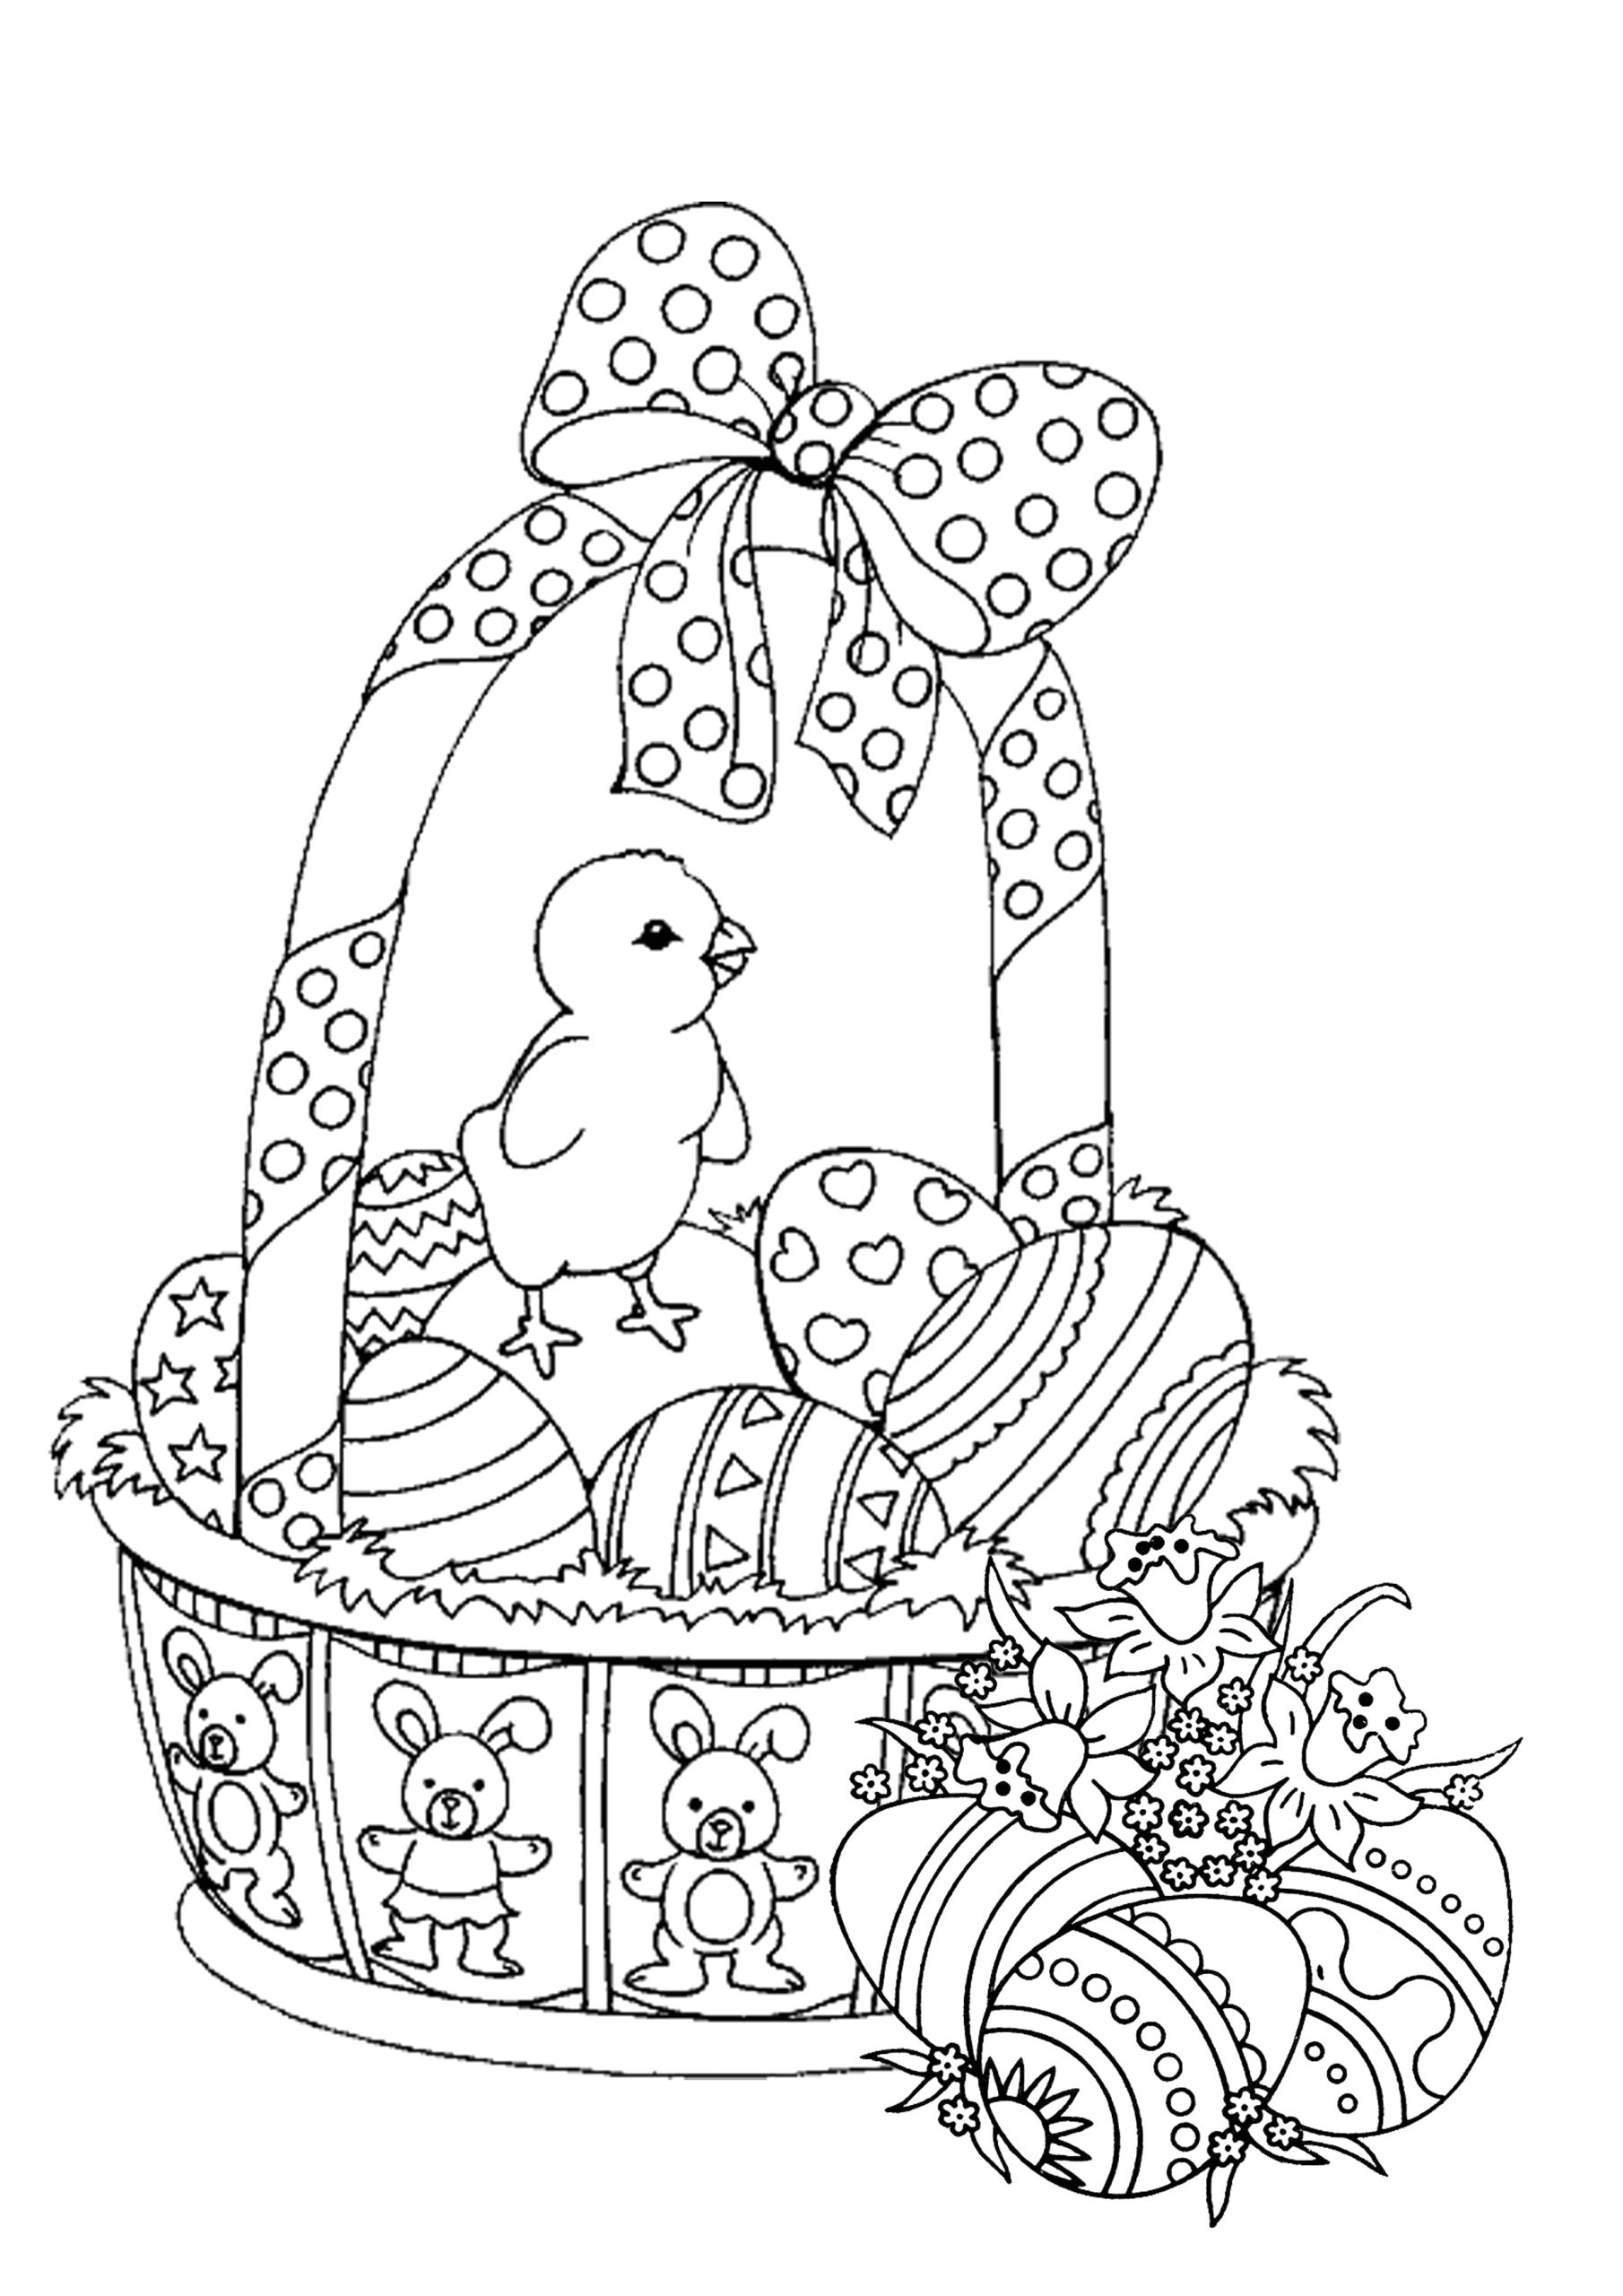 Free Printable Easter Coloring Pages for Adults Easter Coloring Pages for Adults Best Coloring Pages for